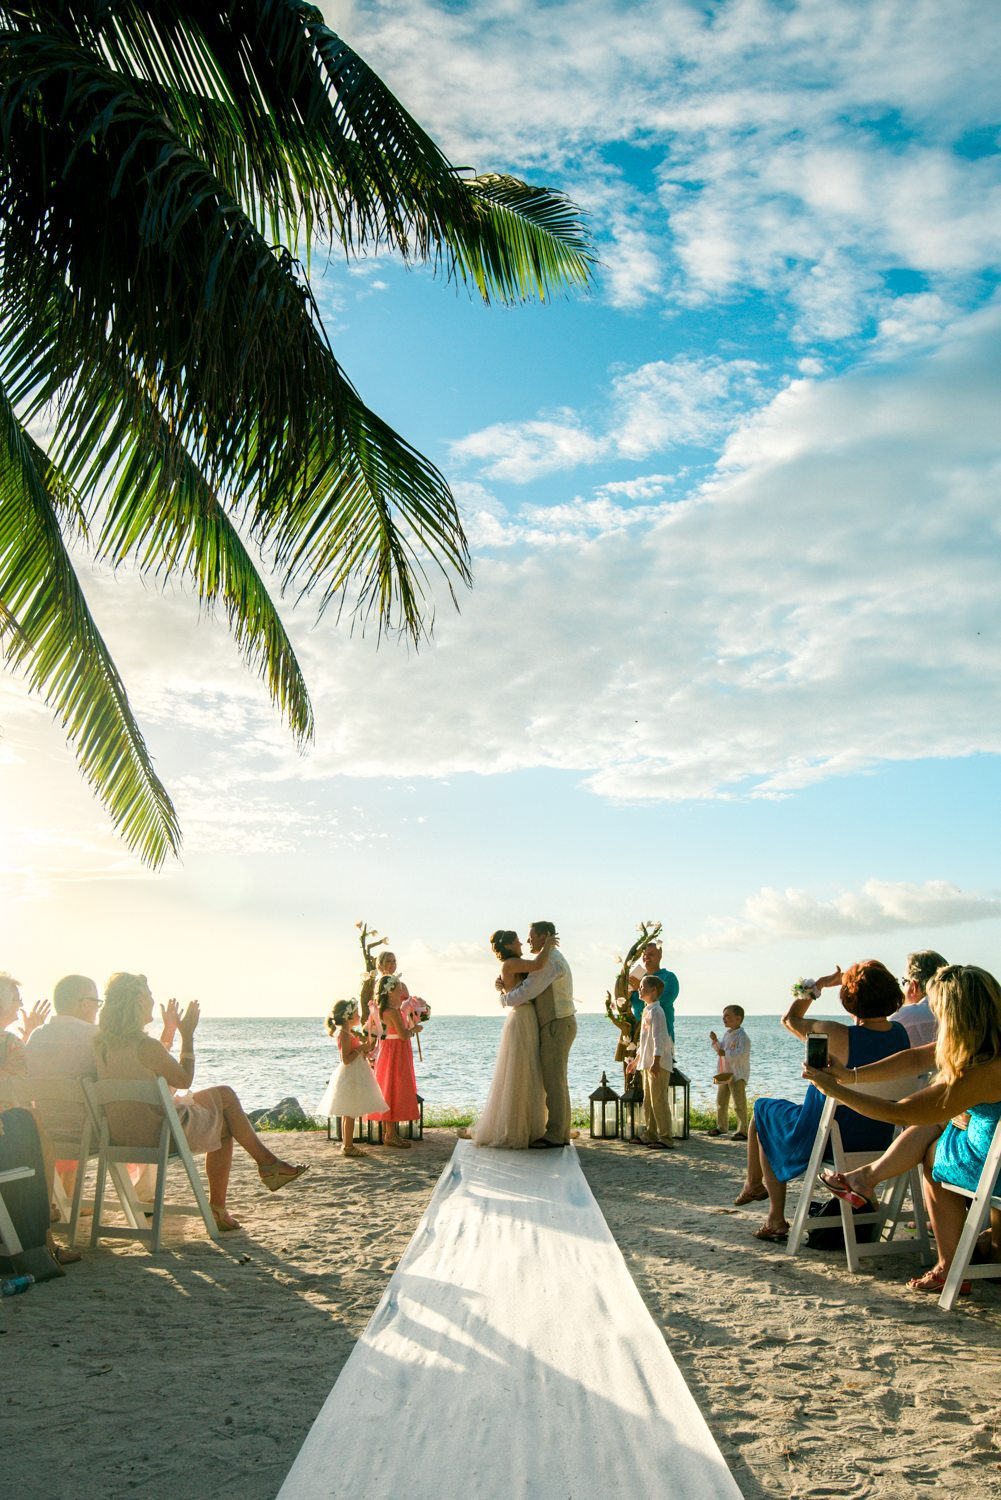 Erin Colin Fort Zachary Taylor Rooftop Cafe Key West Wedding Photographer 44 - Erin & Colin   Key West Wedding Photographer   Fort Zachary Taylor